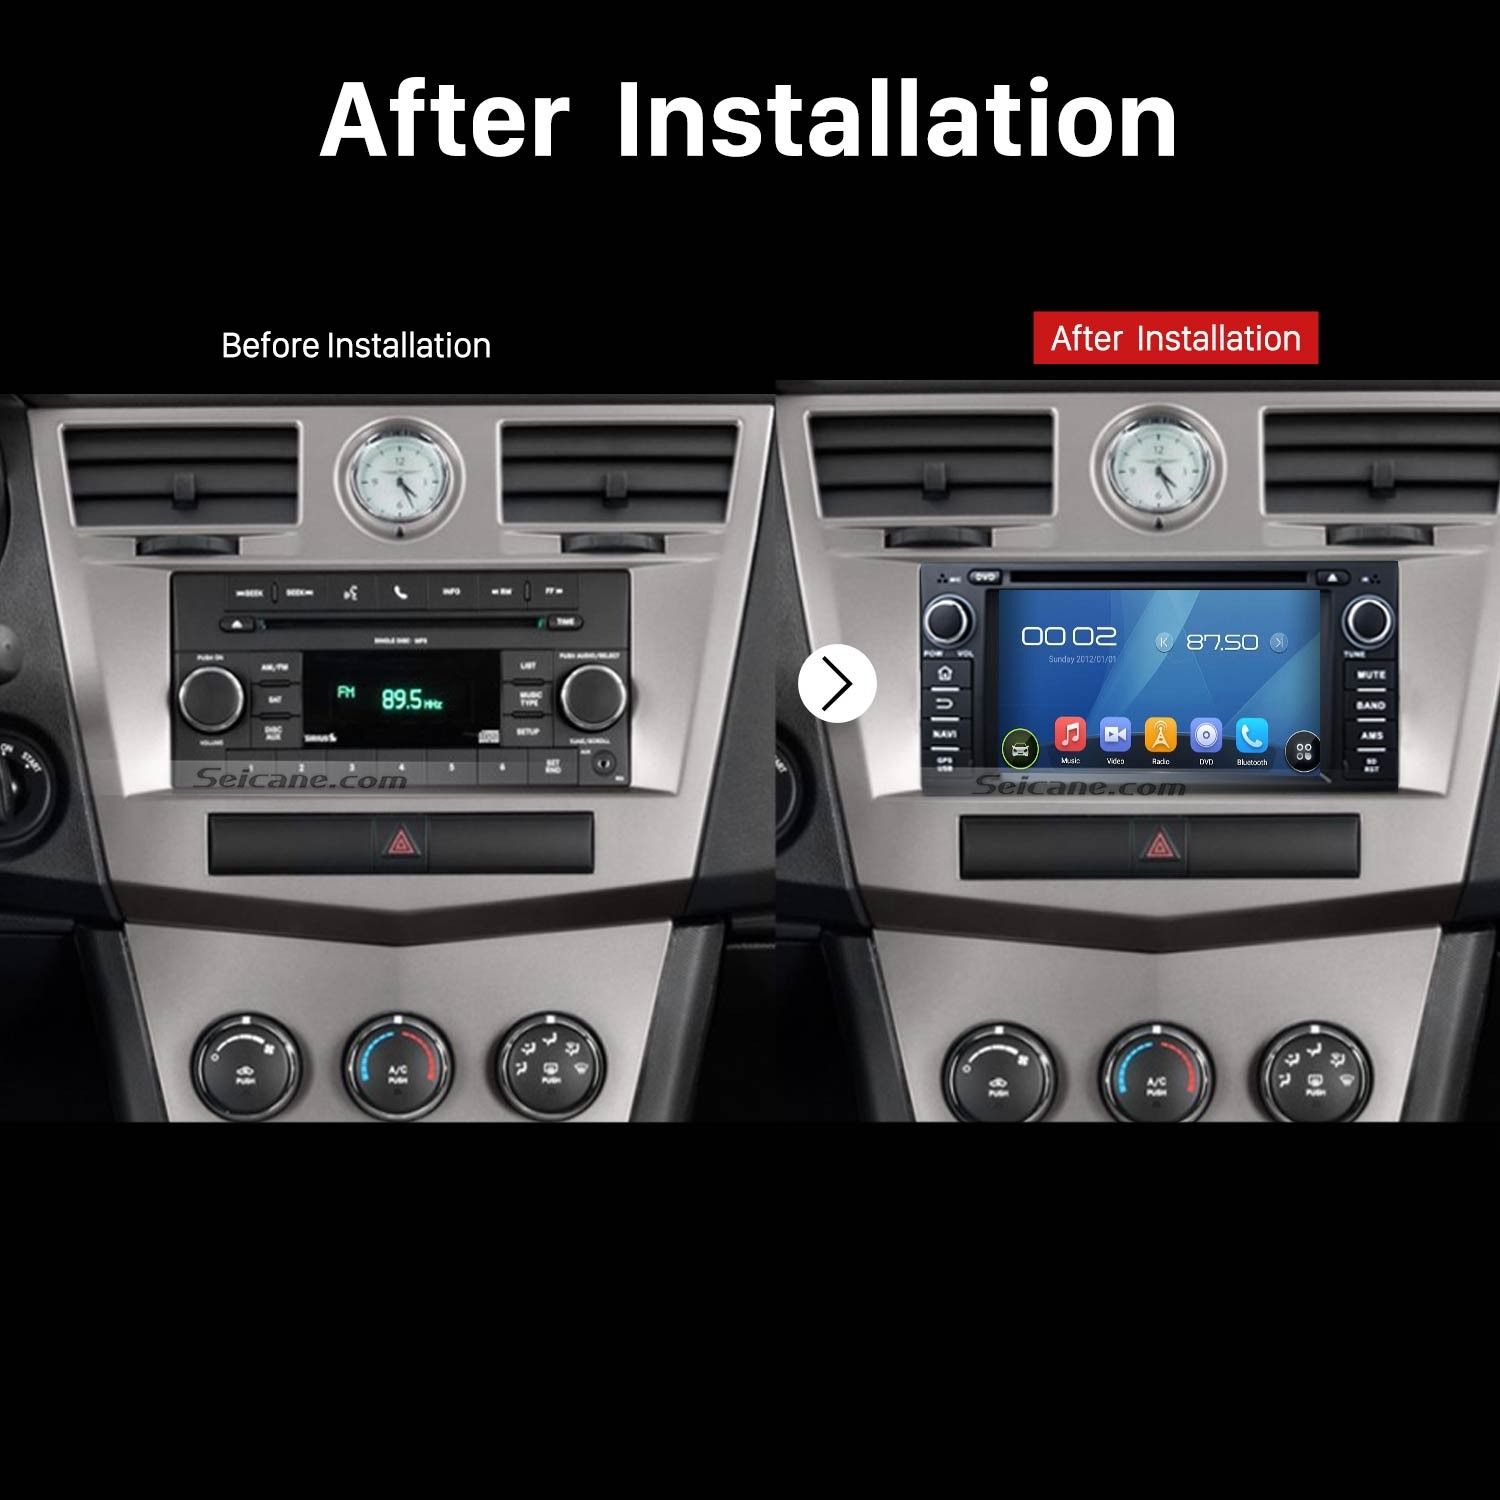 Detailed Removal And Installation Steps For A 2006 2011 Chevy 06 Grand Cherokee Factory Amplifier Wiring Chevrolet Epica Gps Stereo Audio System After